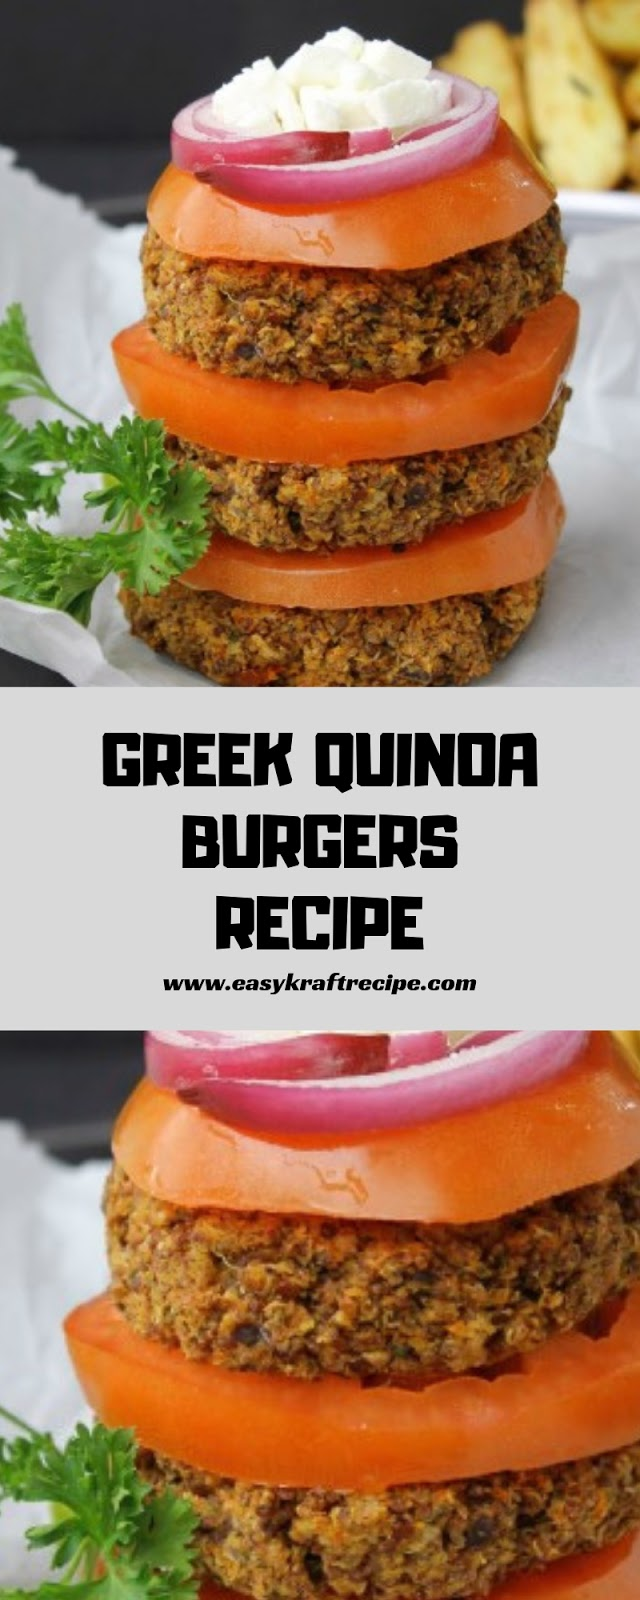 GREEK QUINOA BURGERS RECIPE